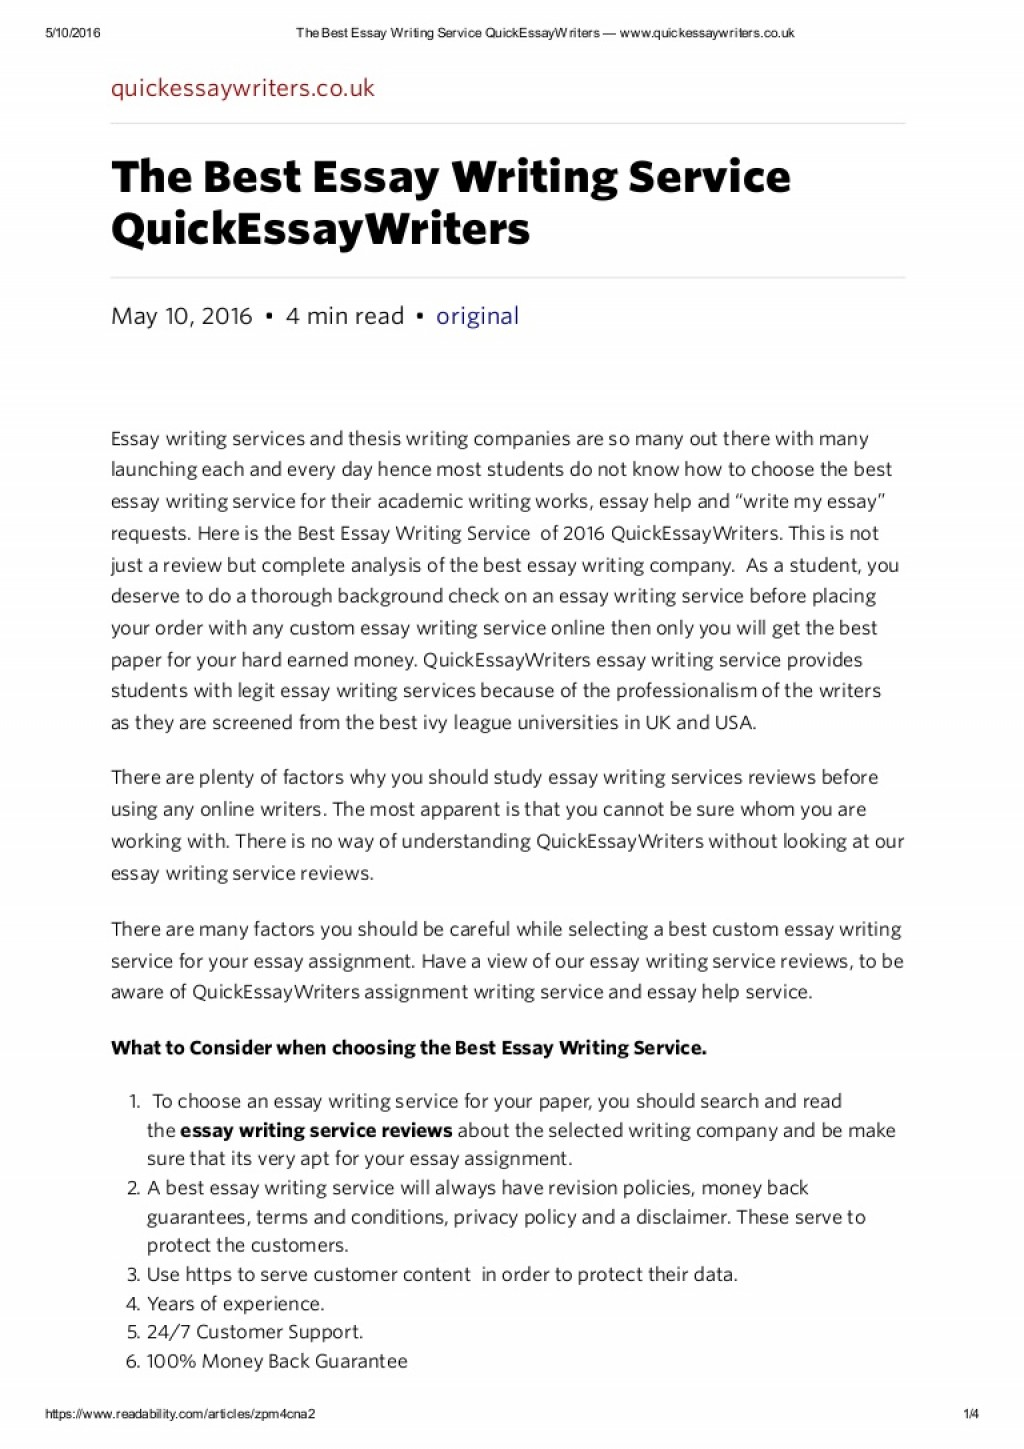 006 The Best Essay Writing Service Quickessaywriters Www Thebestessaywritingservicequickessaywriterswww Thumbn Top Companies Sites Uk Websites Large